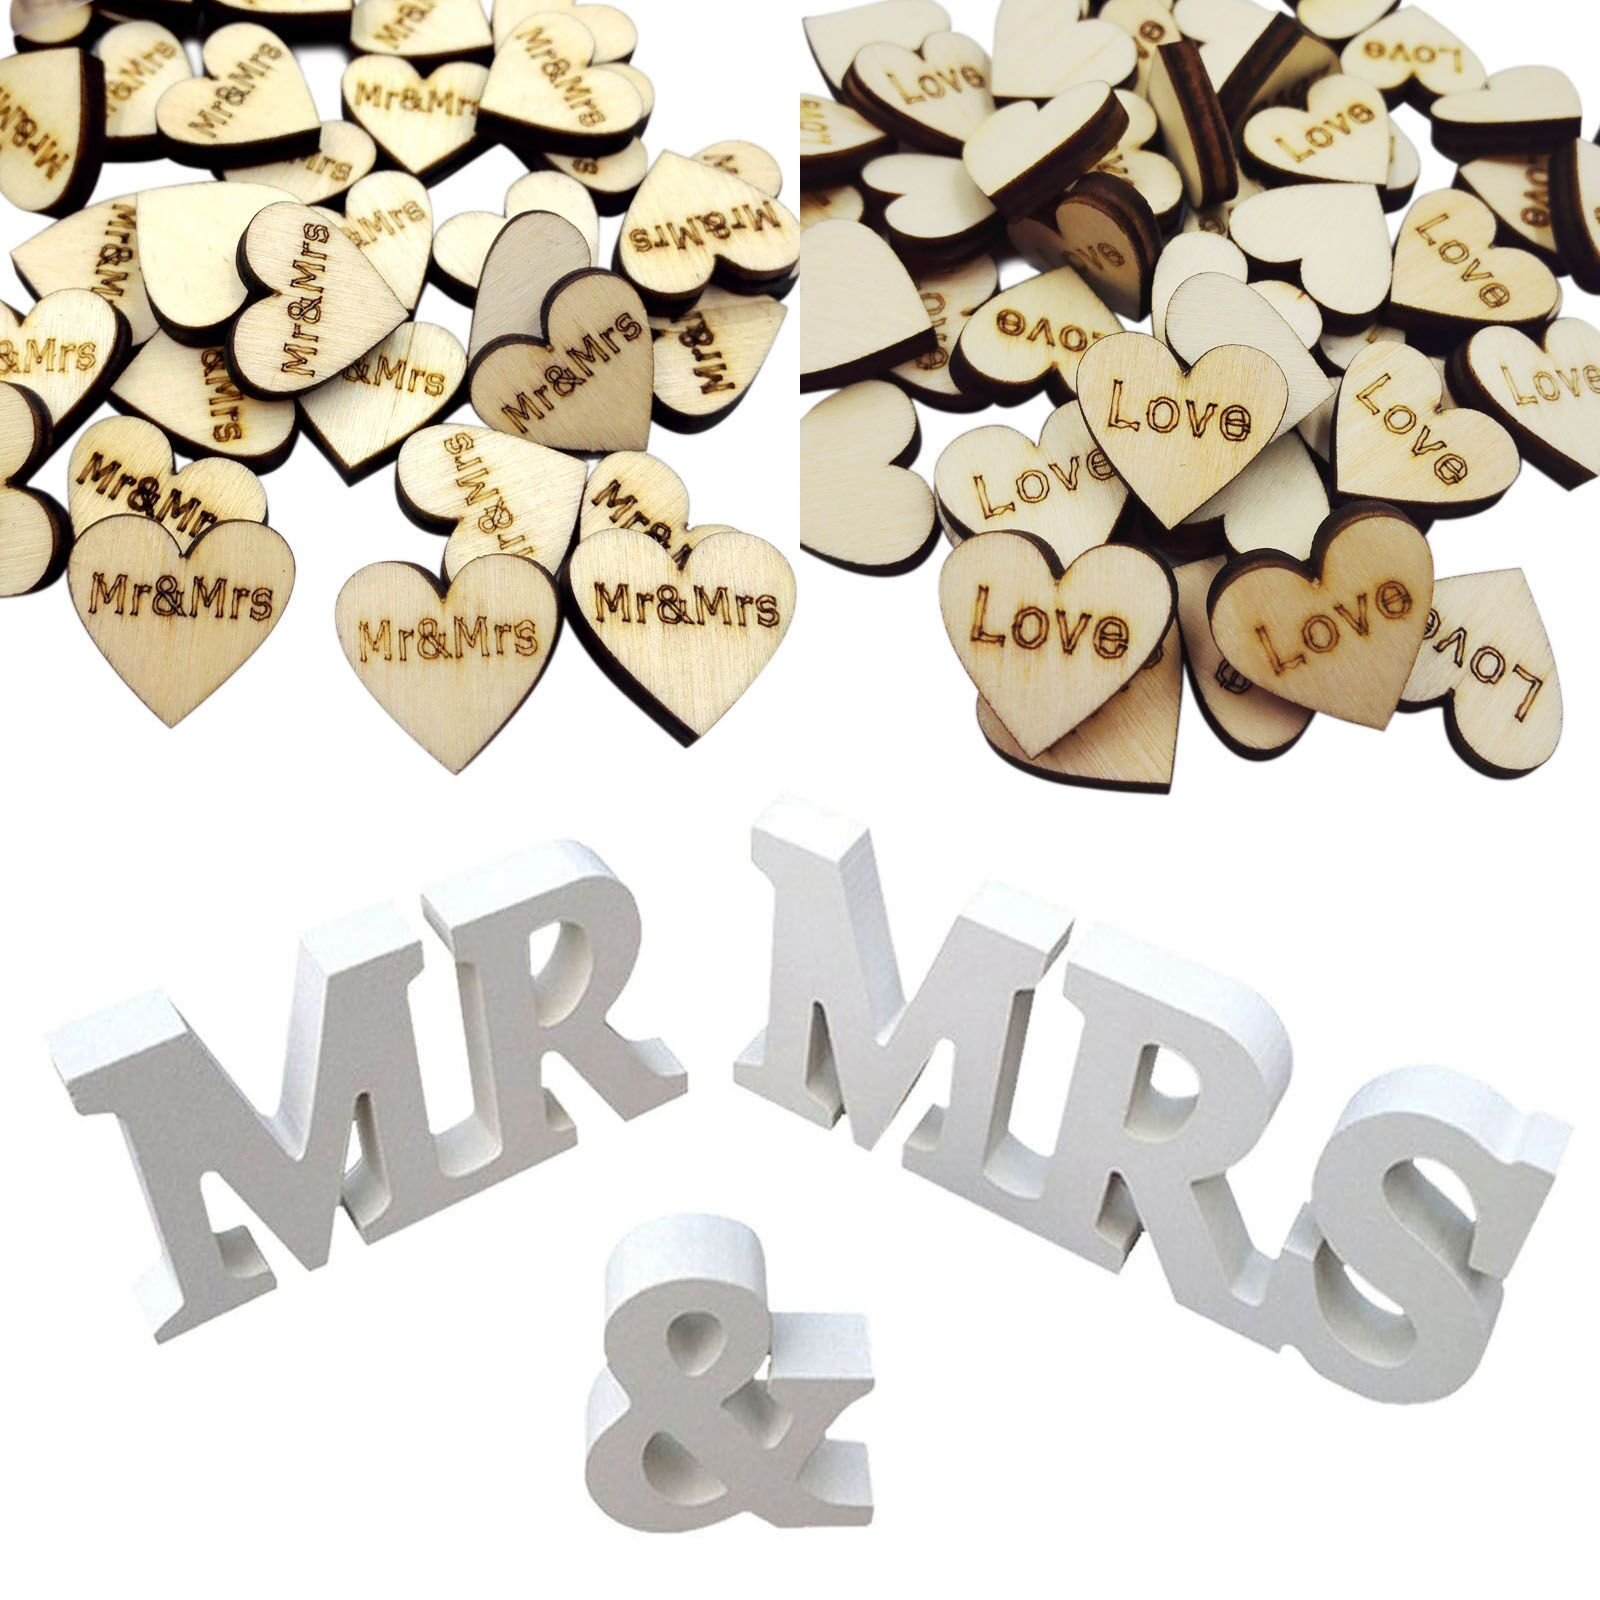 Mr and mrs sign large rustic wedding decorations ilovecos wedding 100 pieces rustic wooden letters mr and mrs love size of the small ones approx 08 inch in height rustic style mini hearts for the wedding table junglespirit Image collections